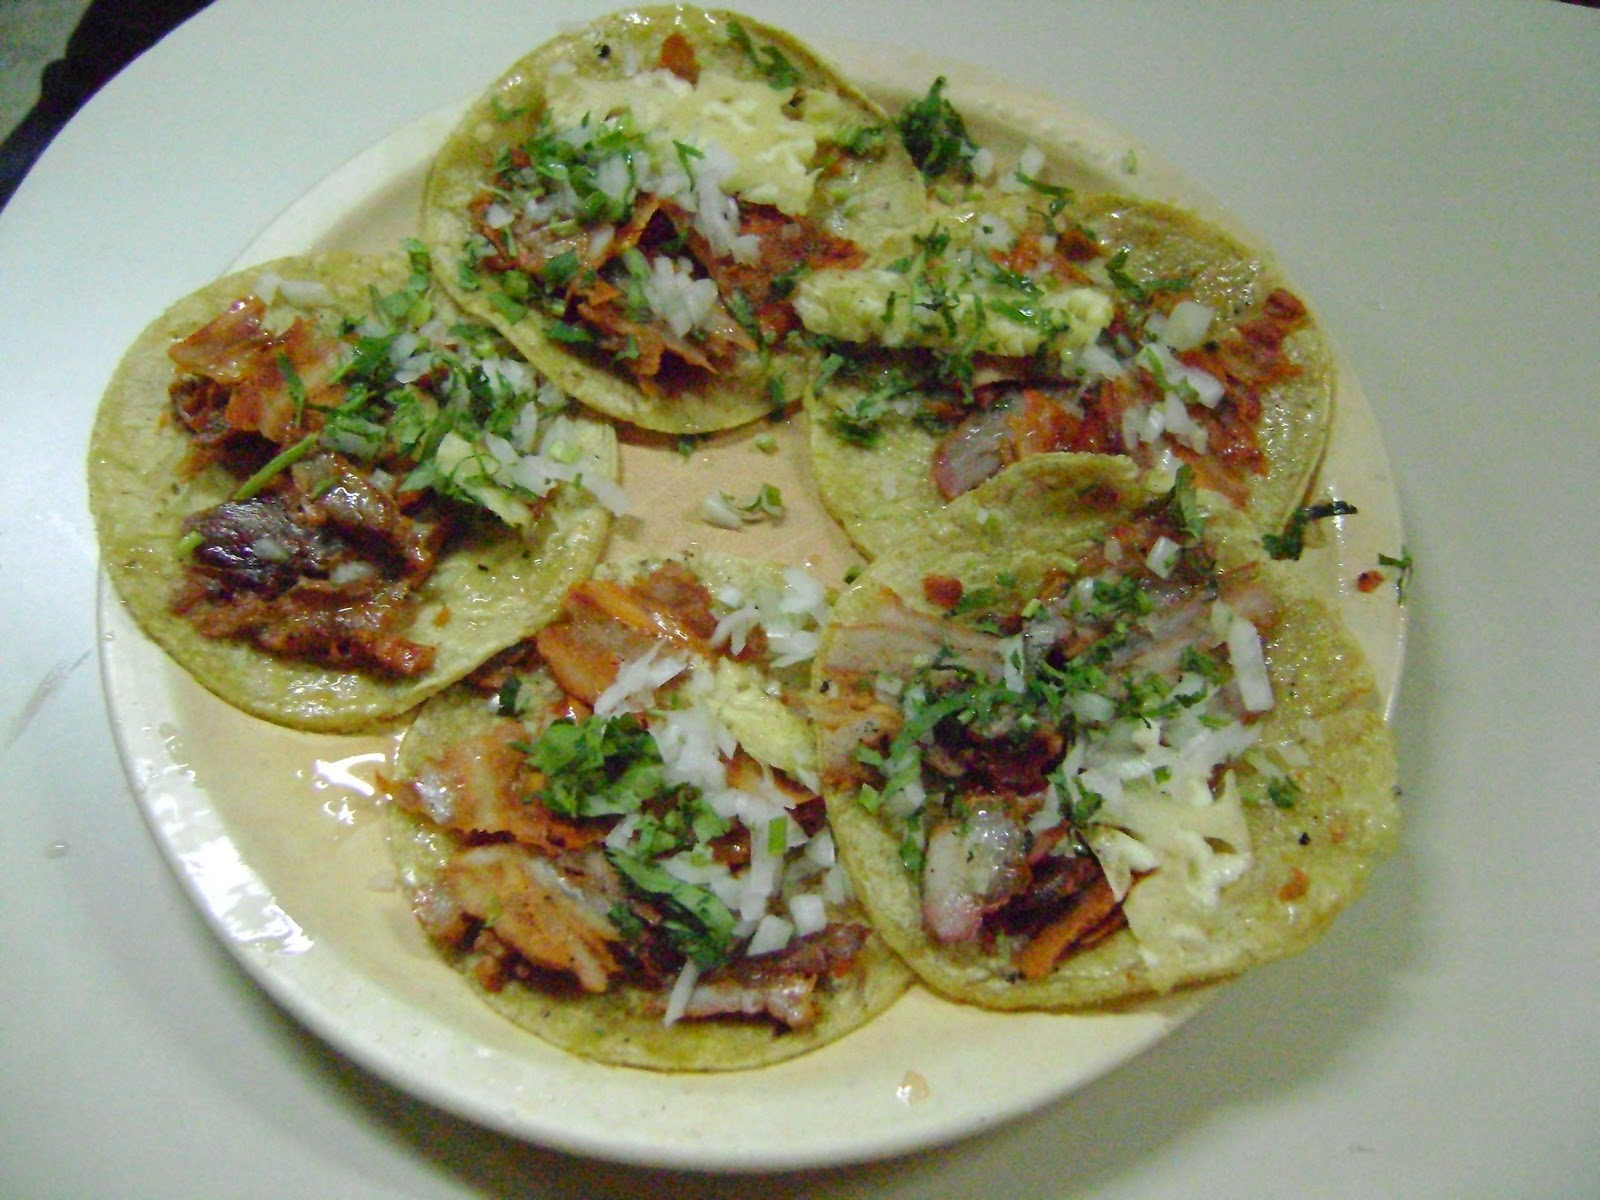 The Best of Mexican Food: Tacos al Pastor